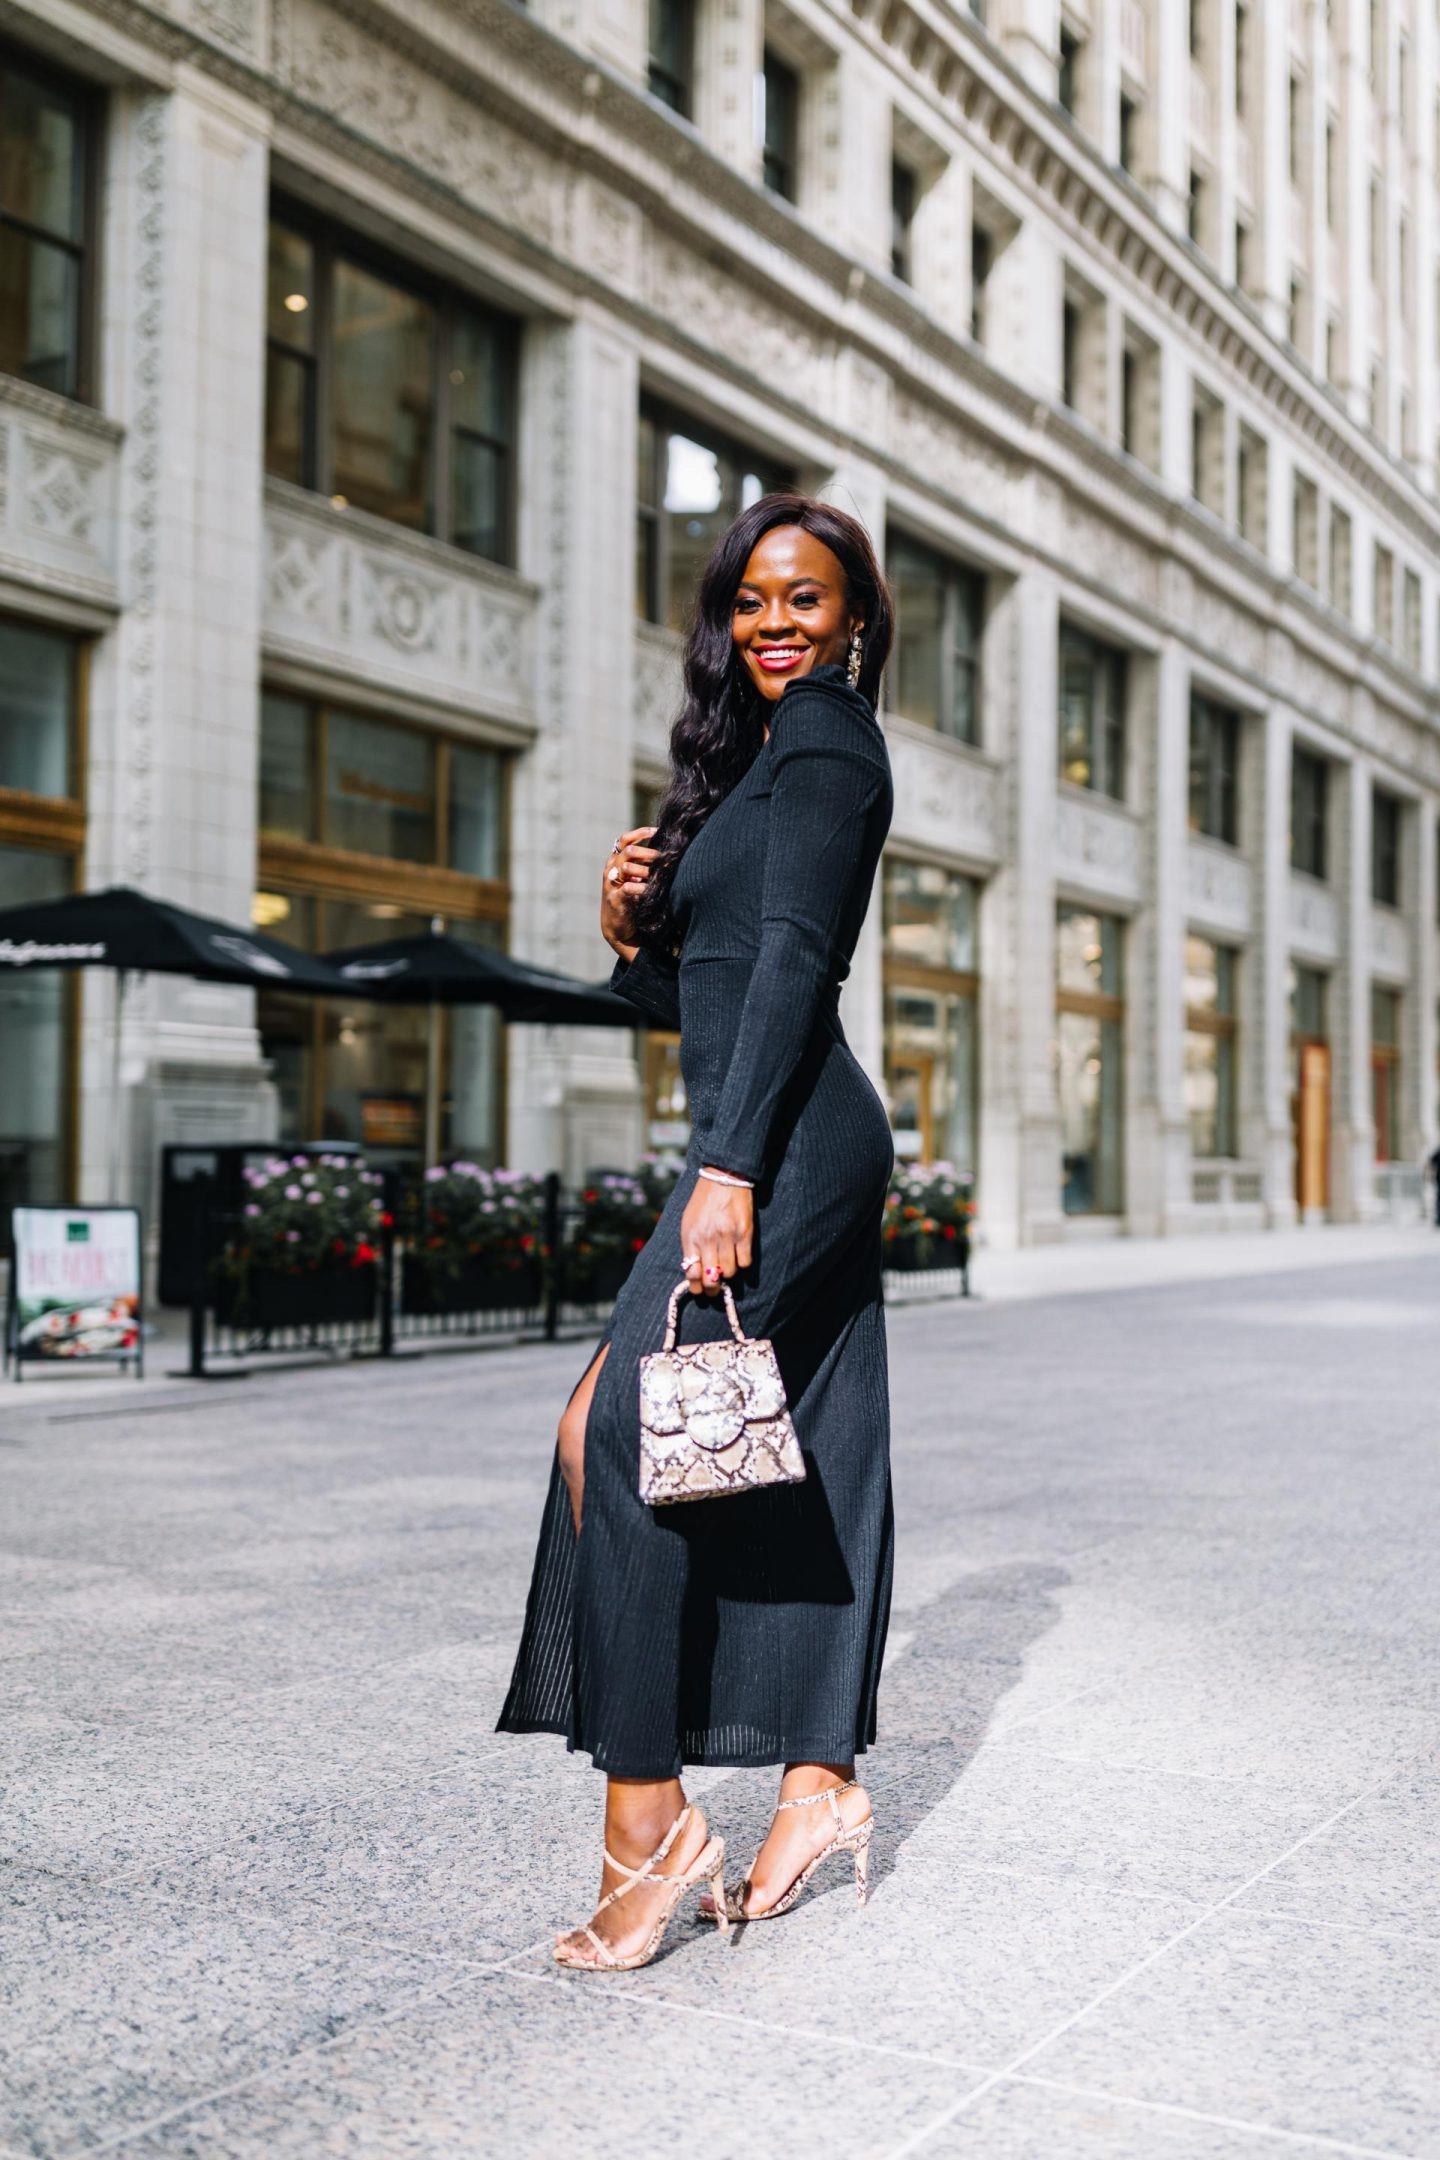 How to look luxe on a small budget